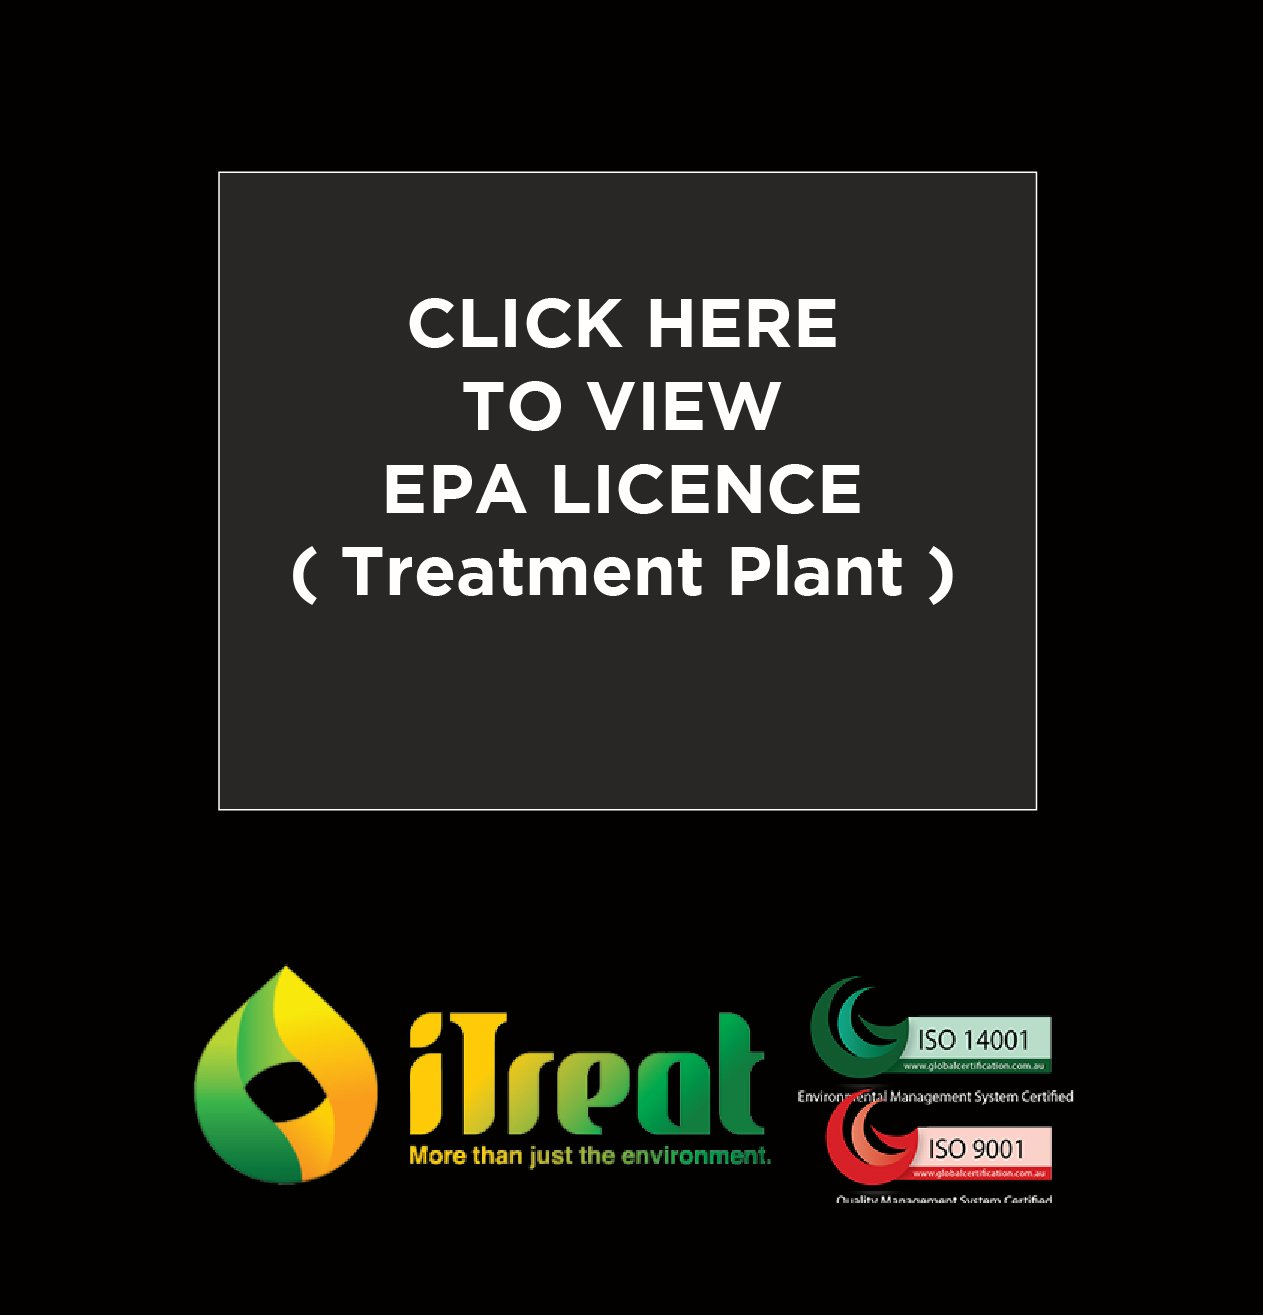 EPA Licence Treatment Plant